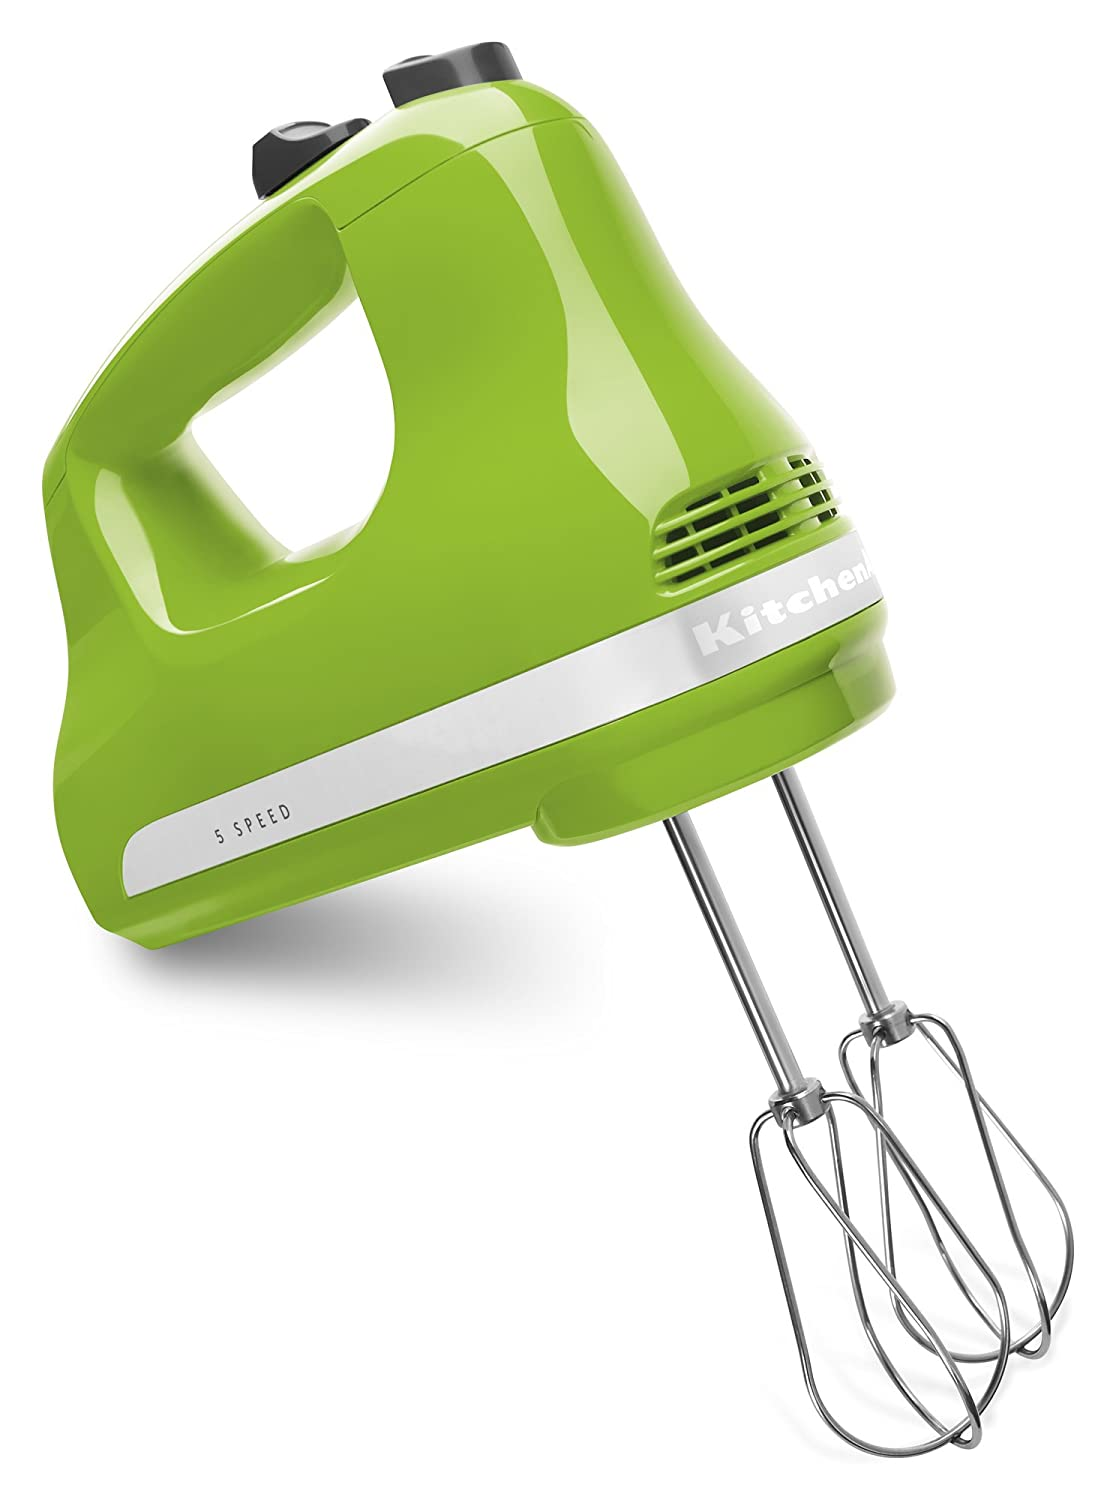 kitchen aid khm512ga 5 speed hand mixer green apple amazon ca